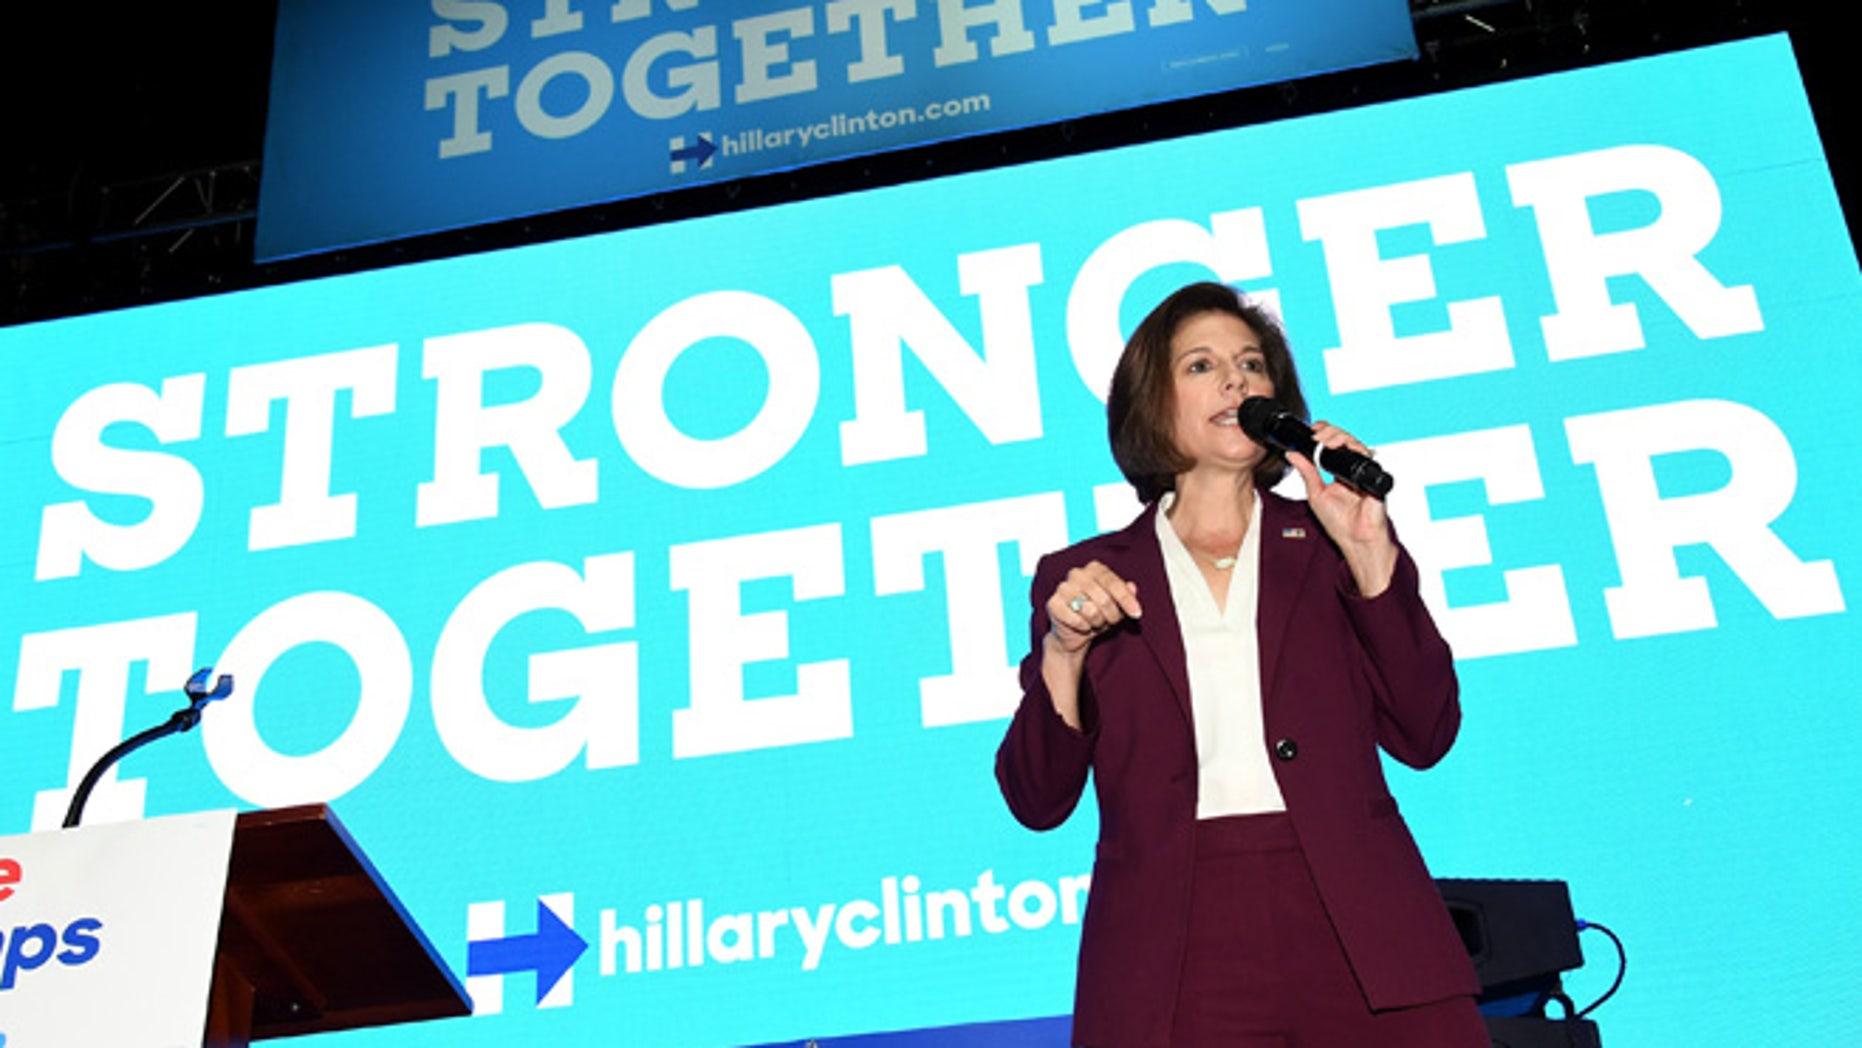 """LAS VEGAS, NV - NOVEMBER 03:  Former Nevada Attorney General and Democratic U.S. Senate candidate Catherine Cortez Masto speaks before a get-out-the-vote performance by DJ/producer Steve Aoki for Democratic presidential nominee Hillary Clinton as part of Hillary for America's """"Love Trumps Hate"""" concert series at the Cox Pavilion on November 3, 2016 in Las Vegas, Nevada. Cortez Masto, along with former U.S. President Bill Clinton and Aoki, urged people to vote for Hillary Clinton and Nevada Democratic candidates during early voting, which ends on November 4 in the battleground state, and on Election Day.  (Photo by Ethan Miller/Getty Images)"""